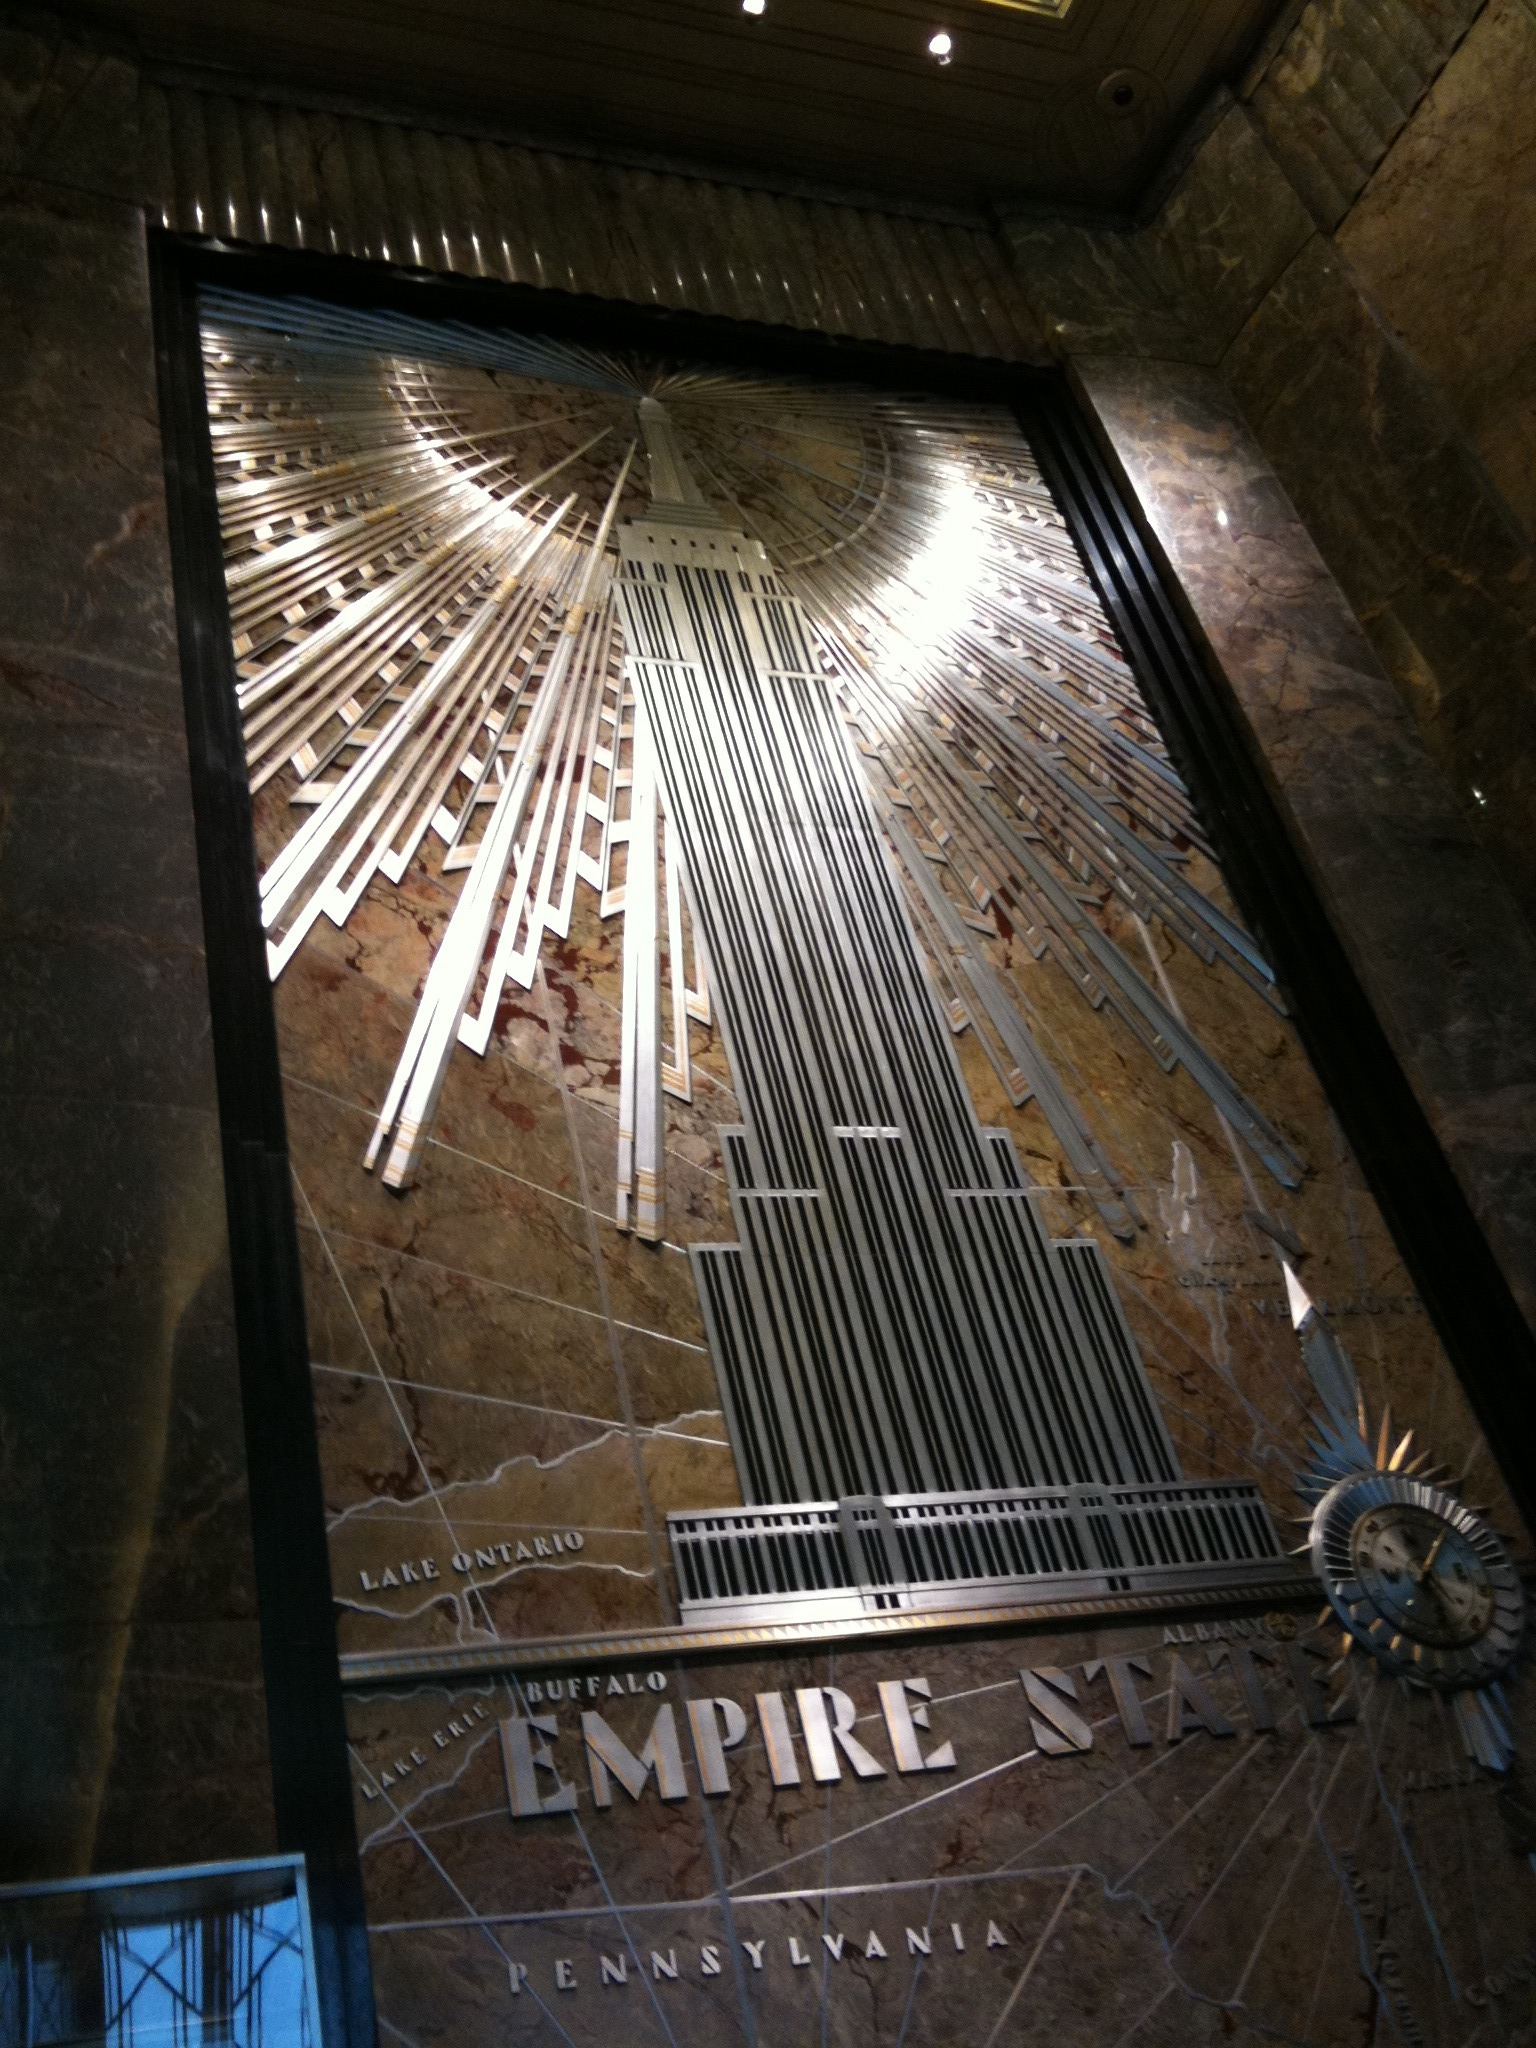 Had 90 min to kill before heading to airport so I took some pics at the top of the Empire State building.